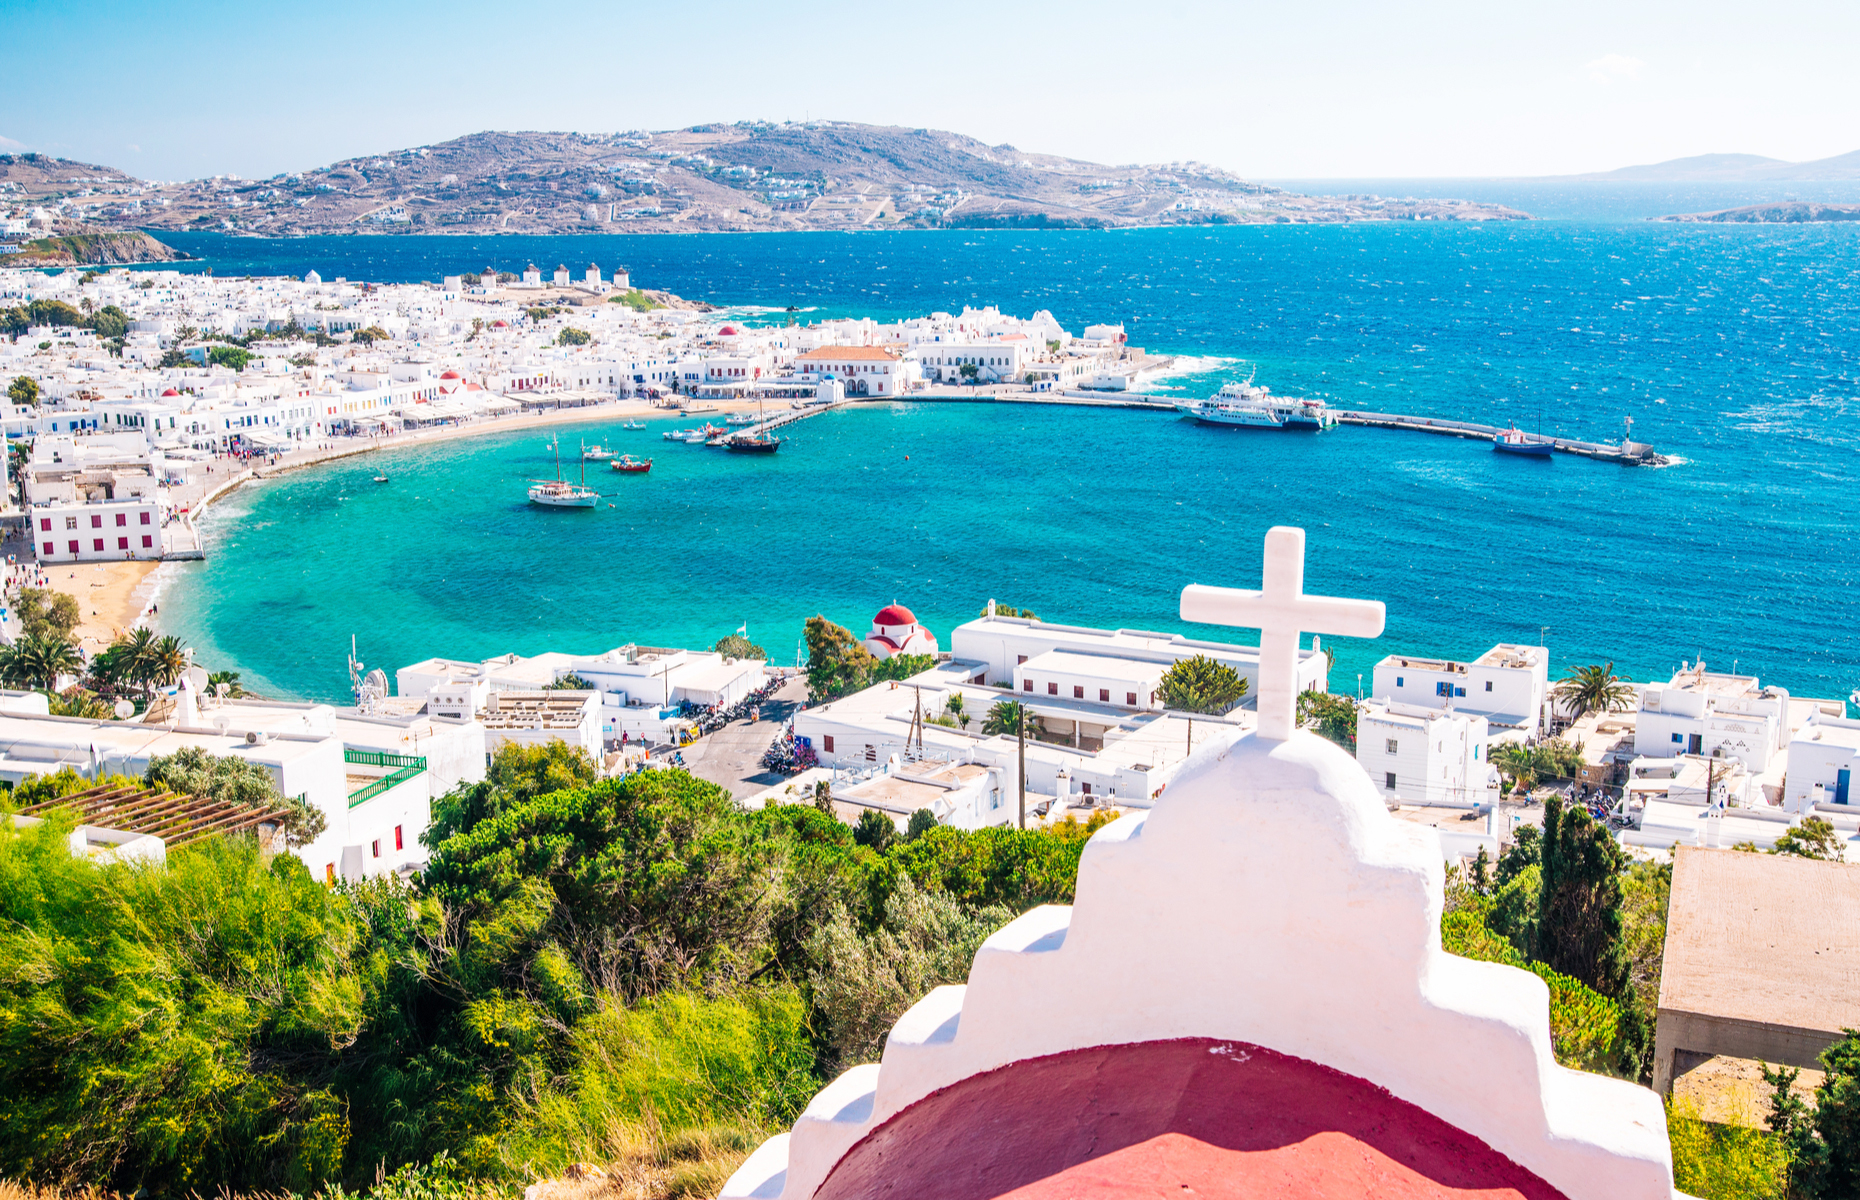 View of Mykonos island, Greece